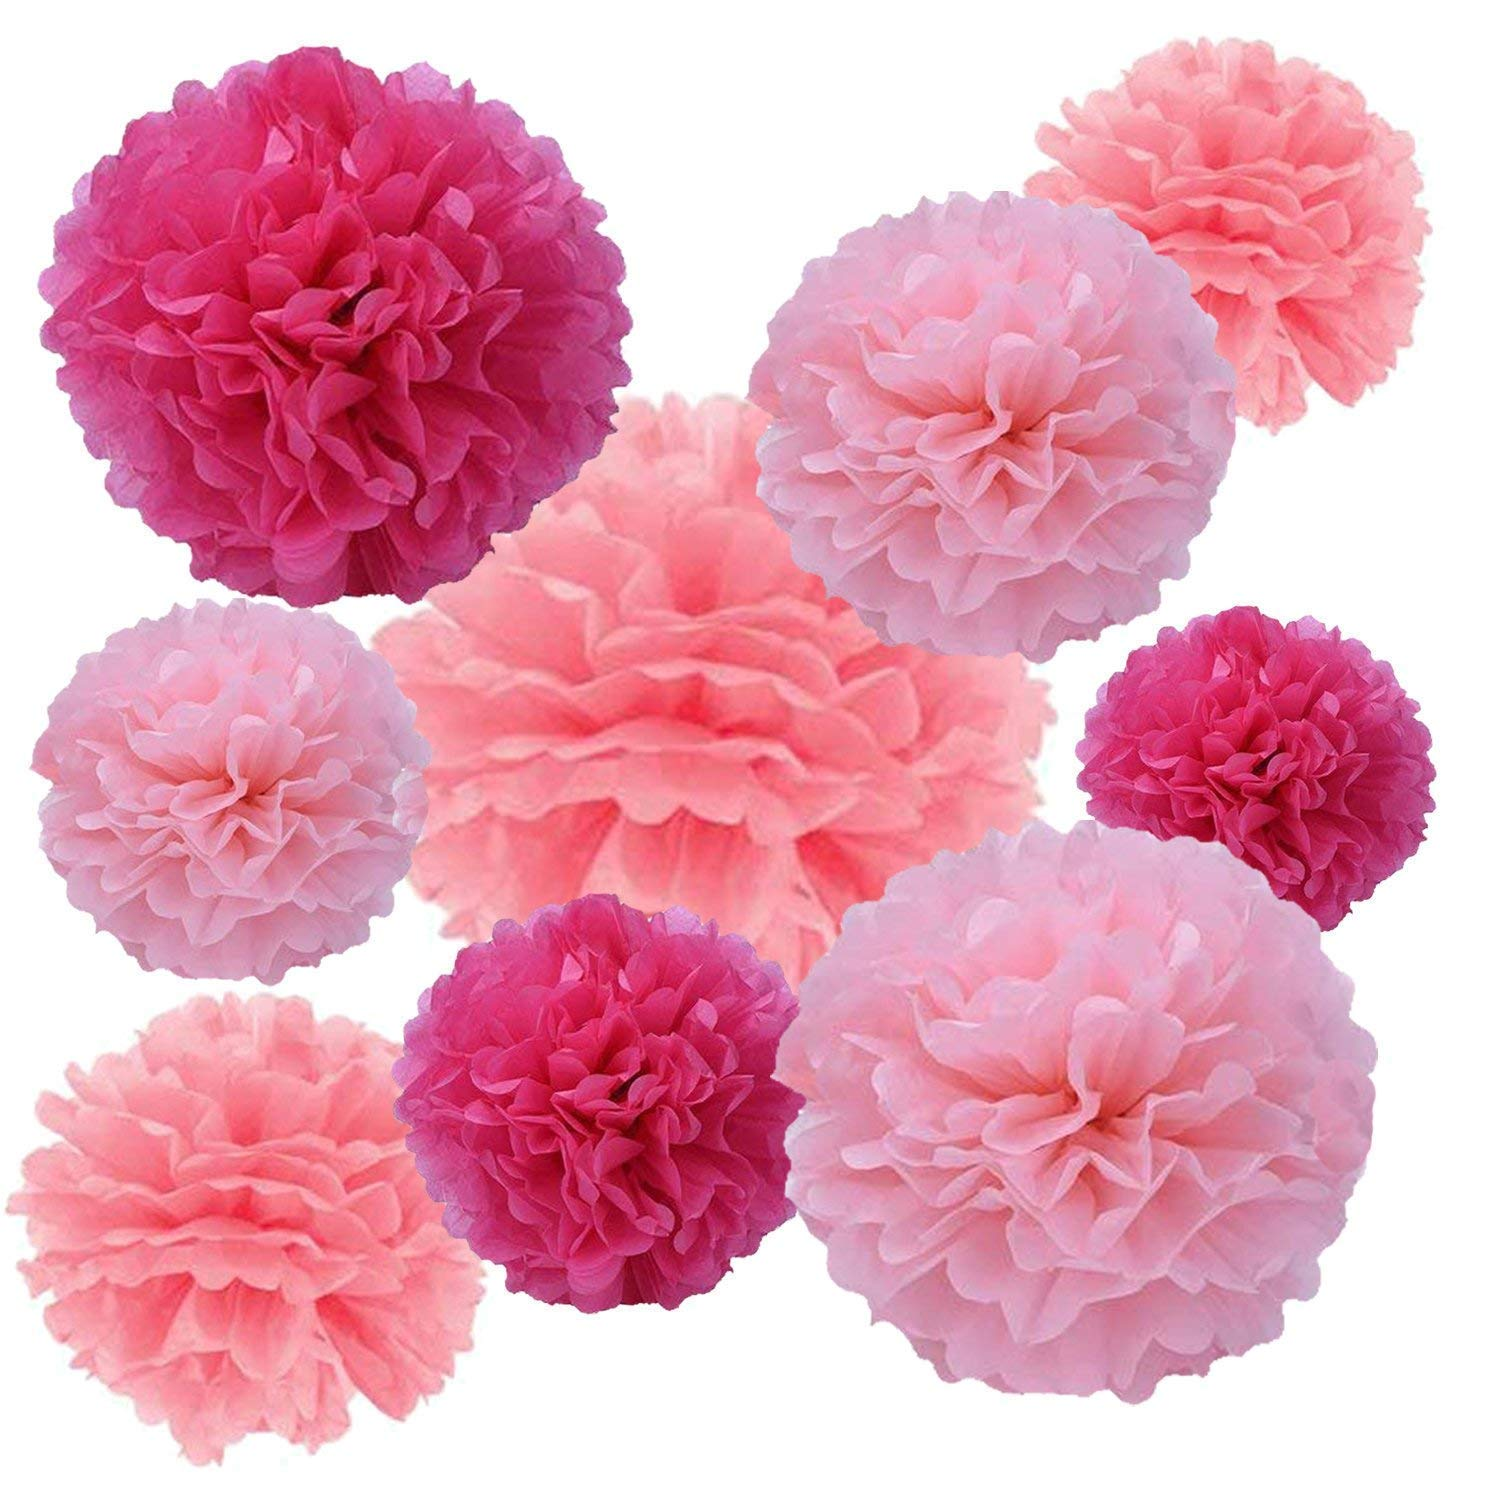 Tissue Paper Flowers,9Pcs Large Pom Poms Decorations Hanging Flowers,Eholder Flower Garland Decor for Wedding Party Favor Birthday Christmas Halloween,Honeycomb Balls (Rose red,Light Pink,hot Pink)